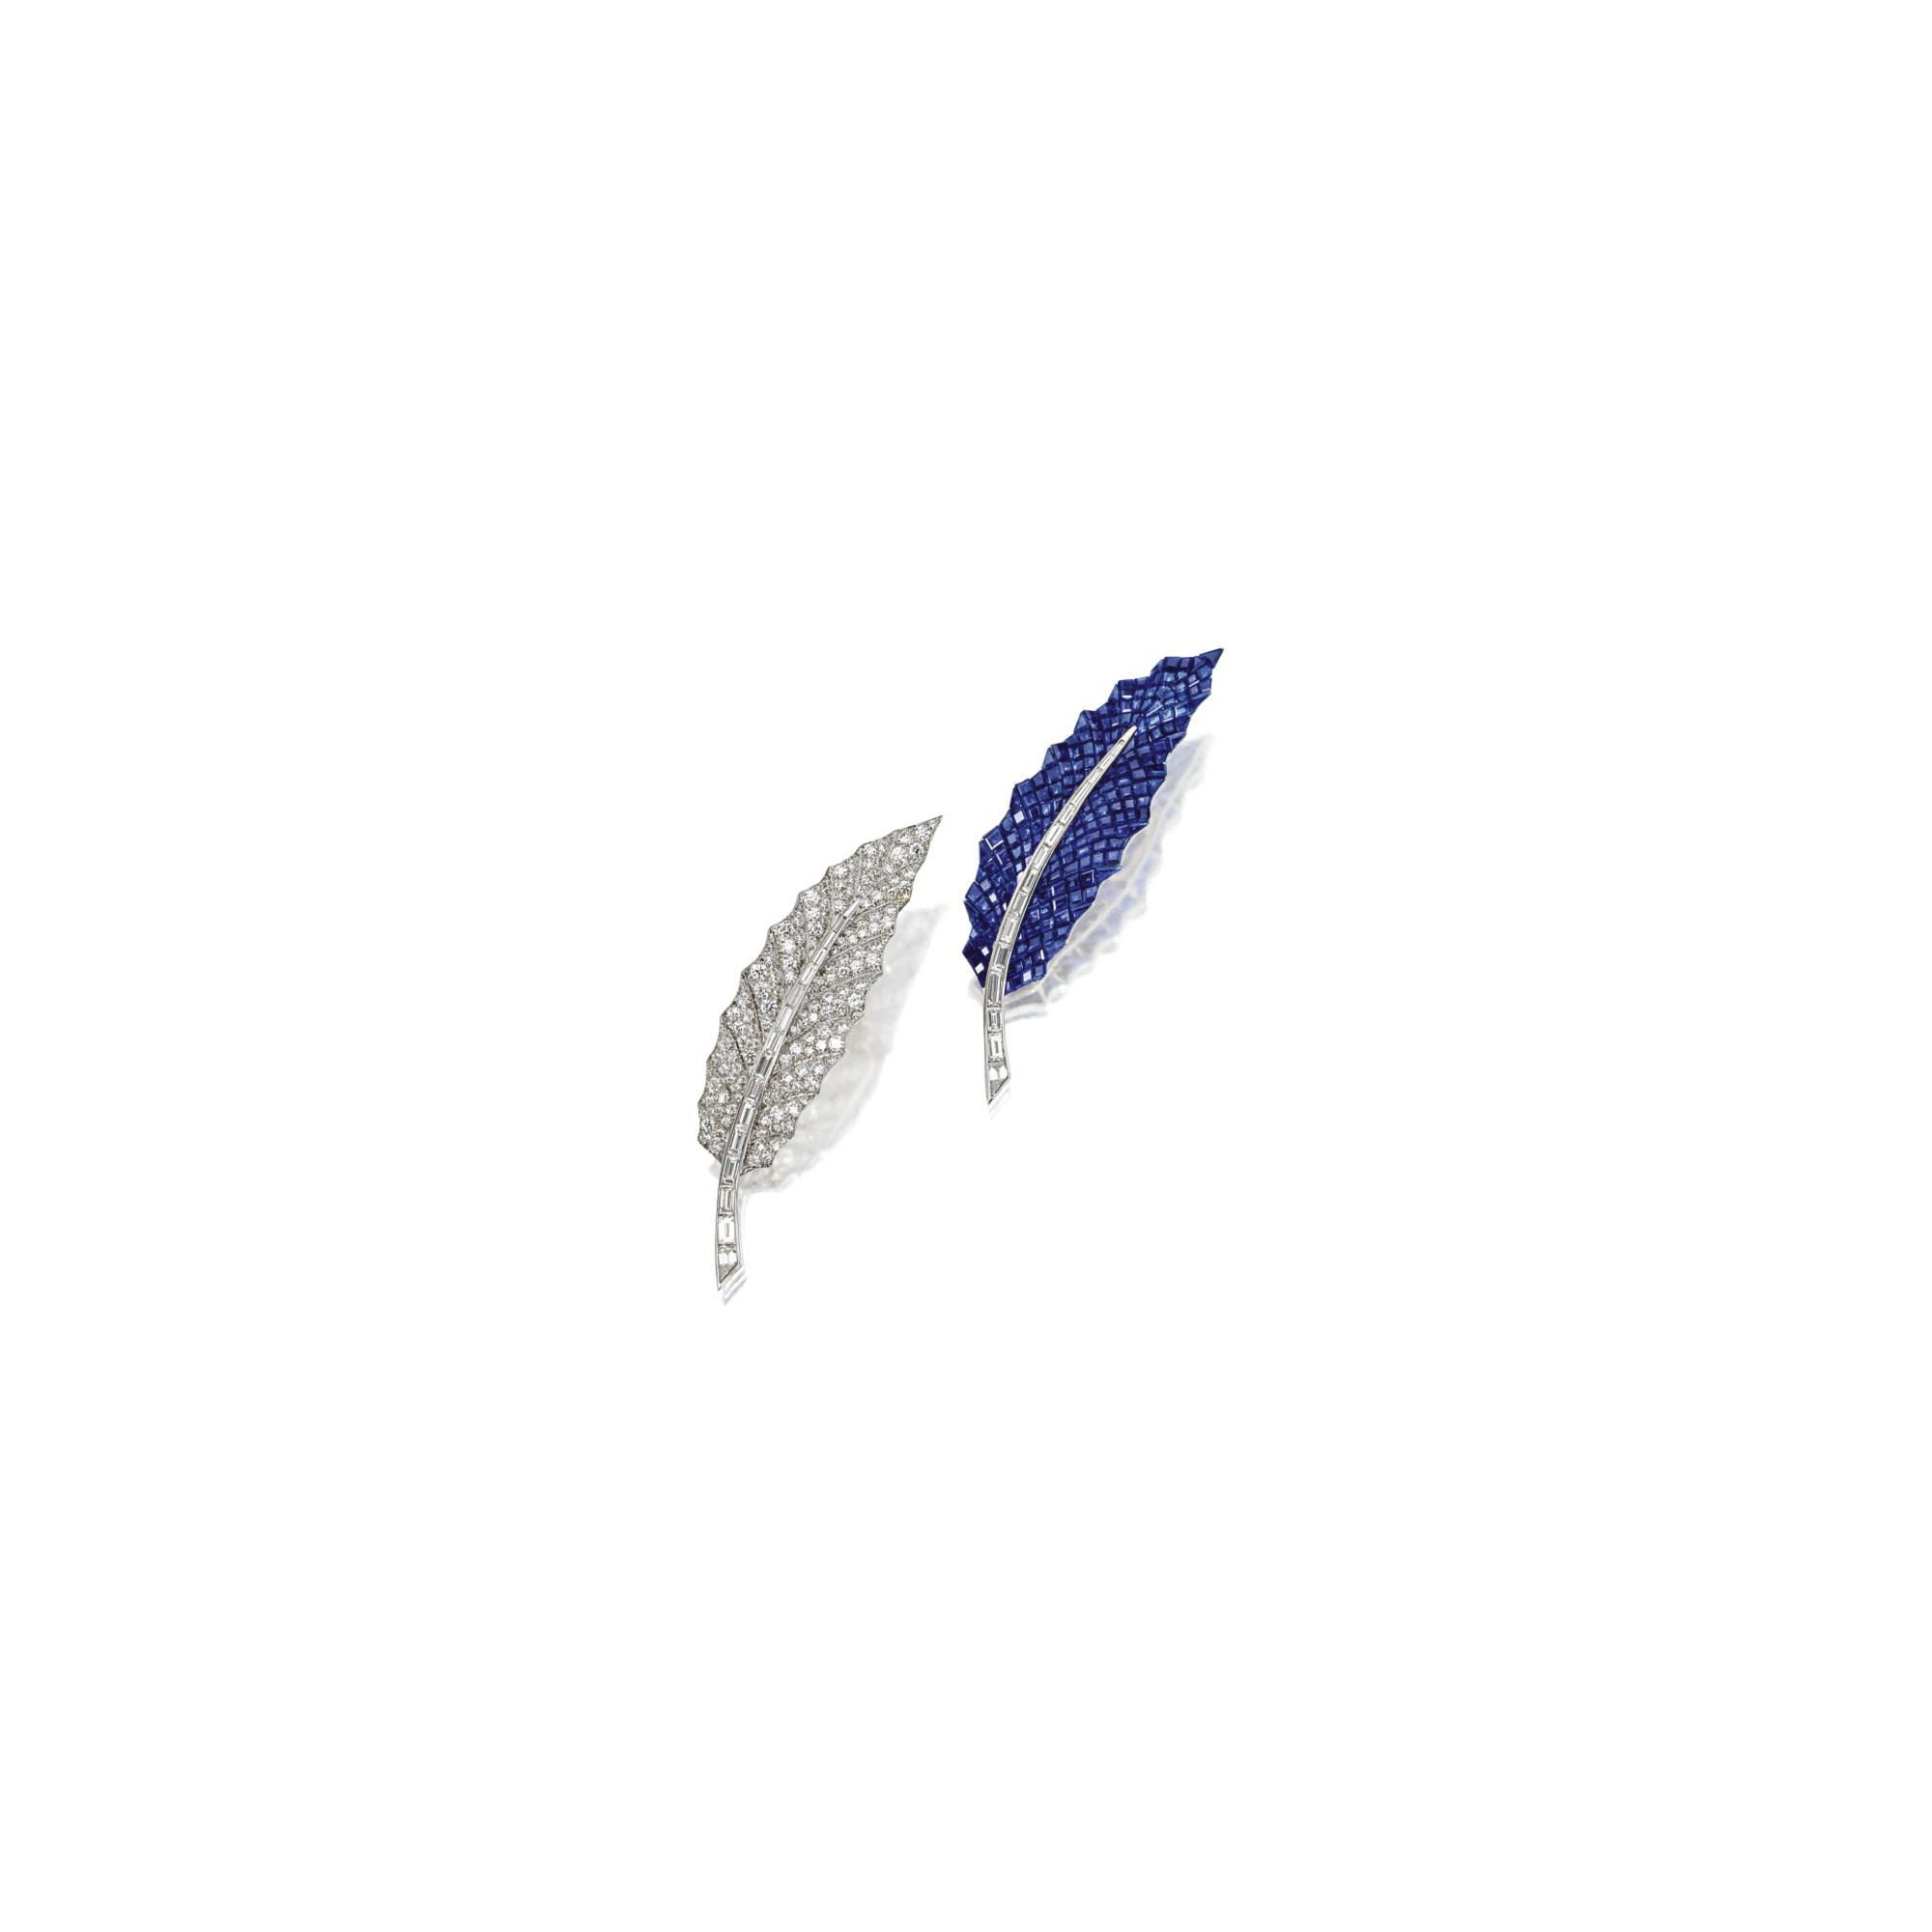 Pair of sapphire and diamond leaf clips, Oscar Heyman & Brothers Inc. | Lot | Sotheby's